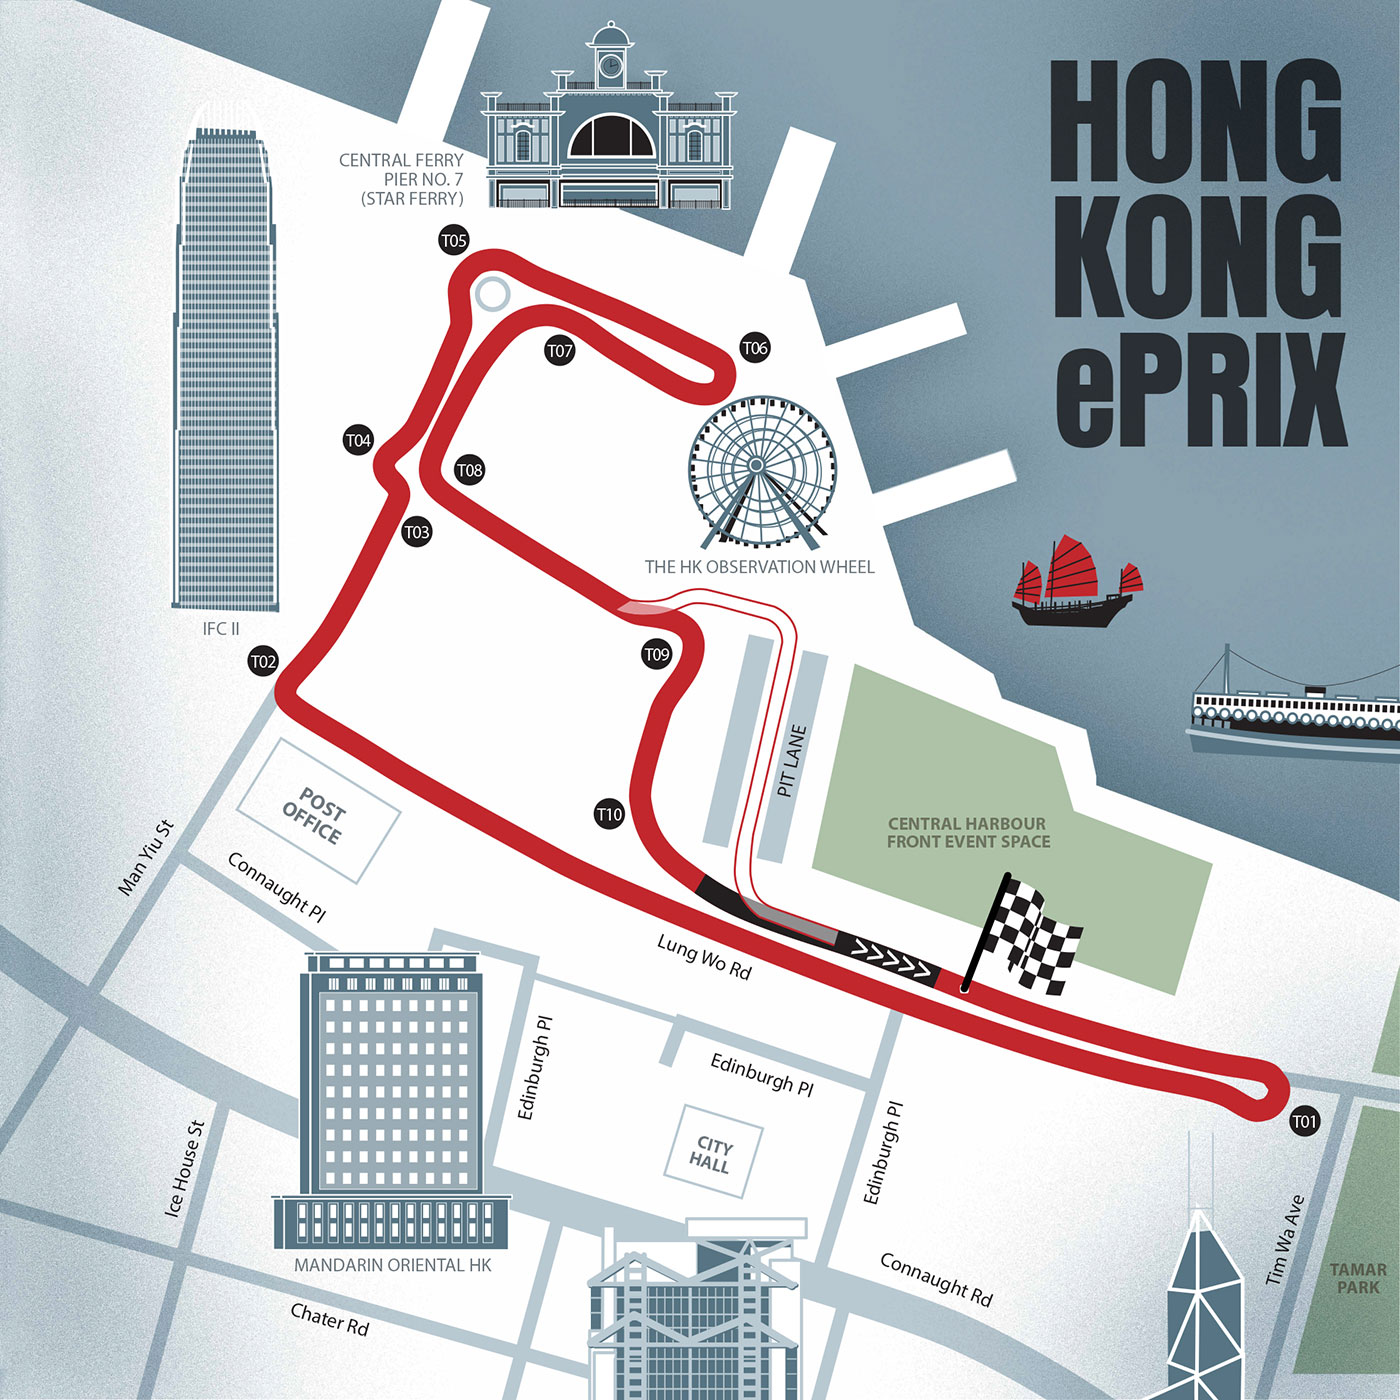 The action keeps charging up with non-qualifying and qualifying Formula E races all leading up to our featured event, the HKT Hong Kong ePrix.